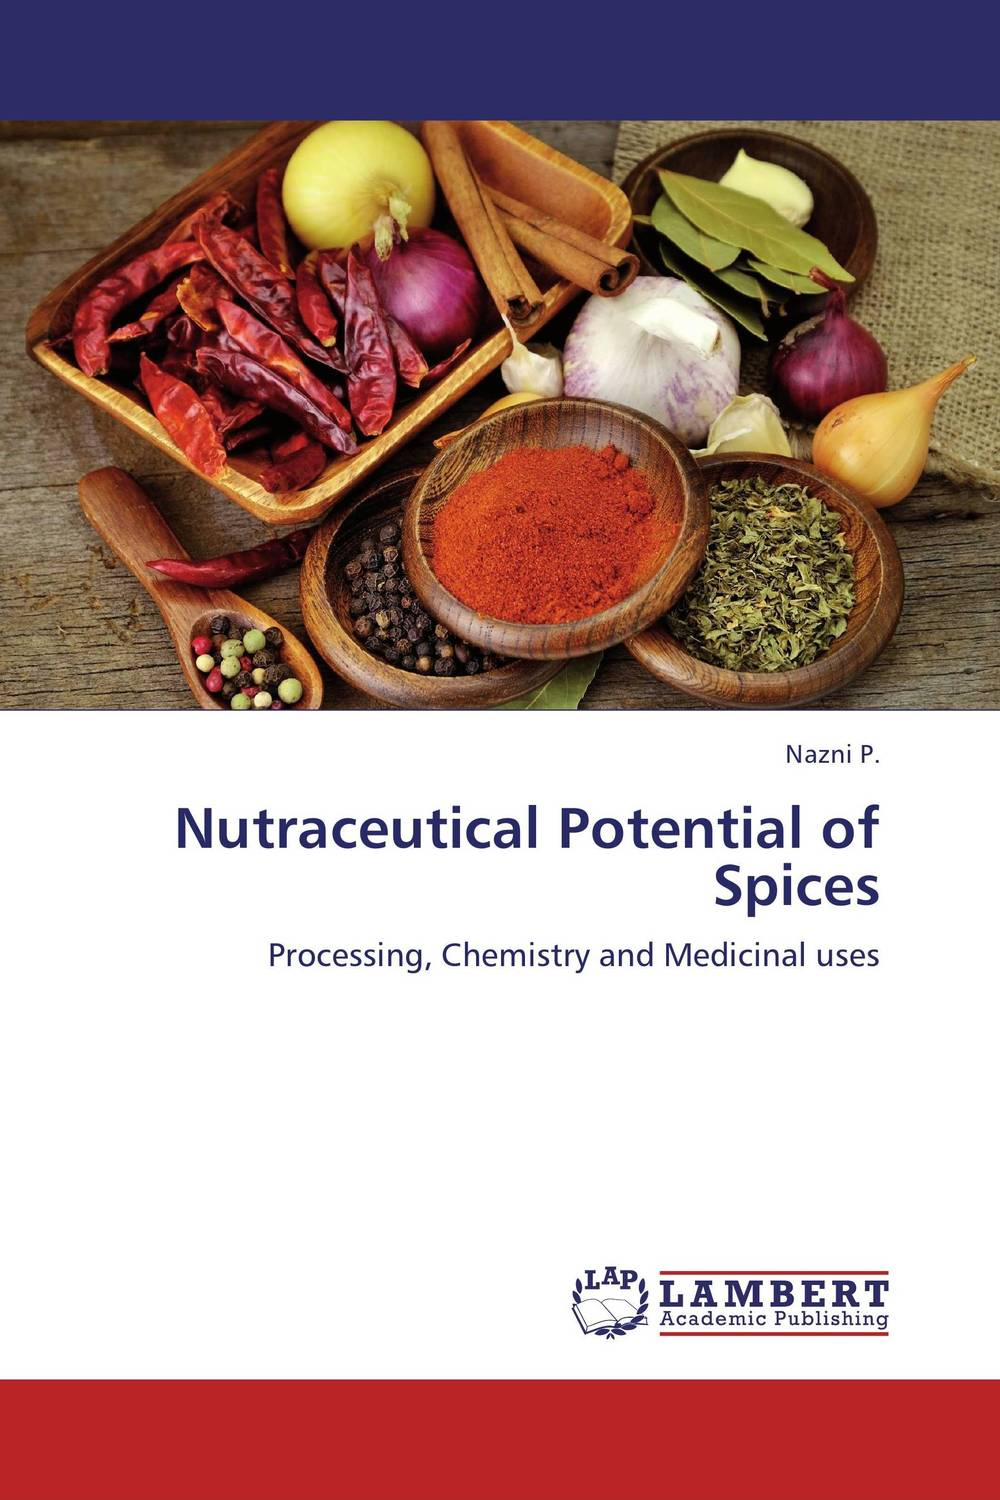 Nutraceutical Potential of Spices thermo operated water valves can be used in food processing equipments biomass boilers and hydraulic systems